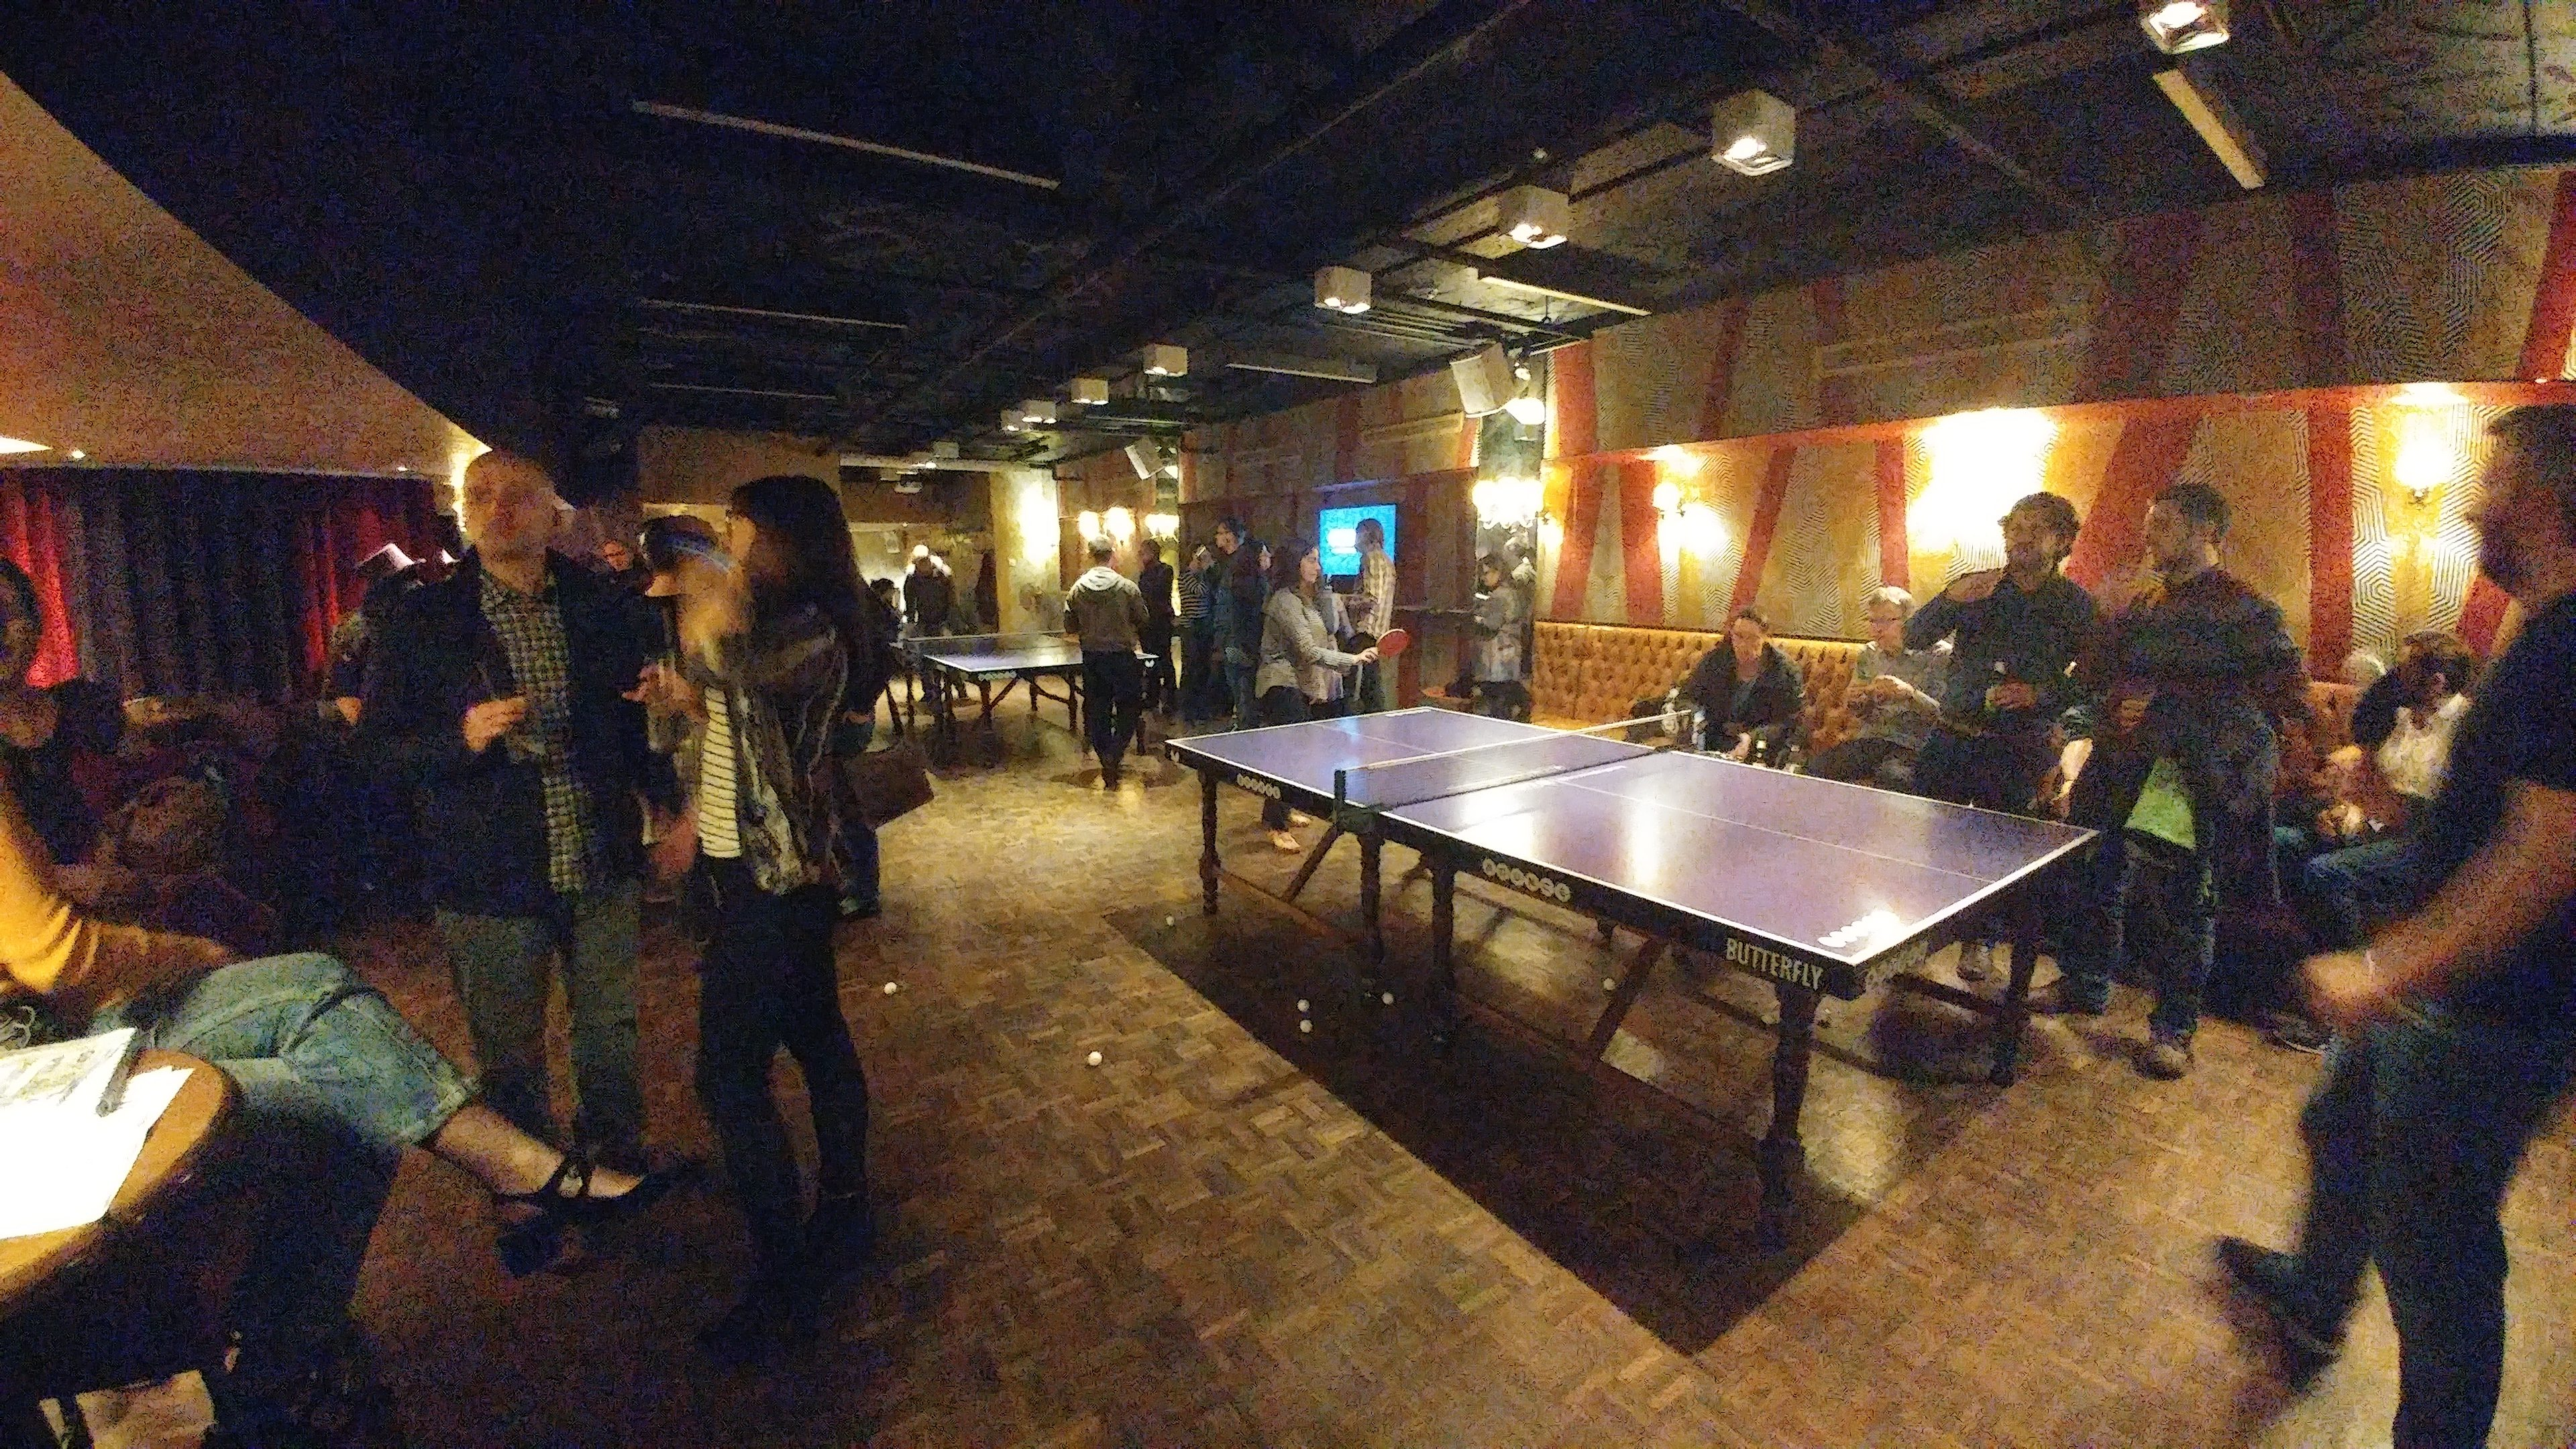 Volunteer, speaker and organiser event with people playing ping pong.